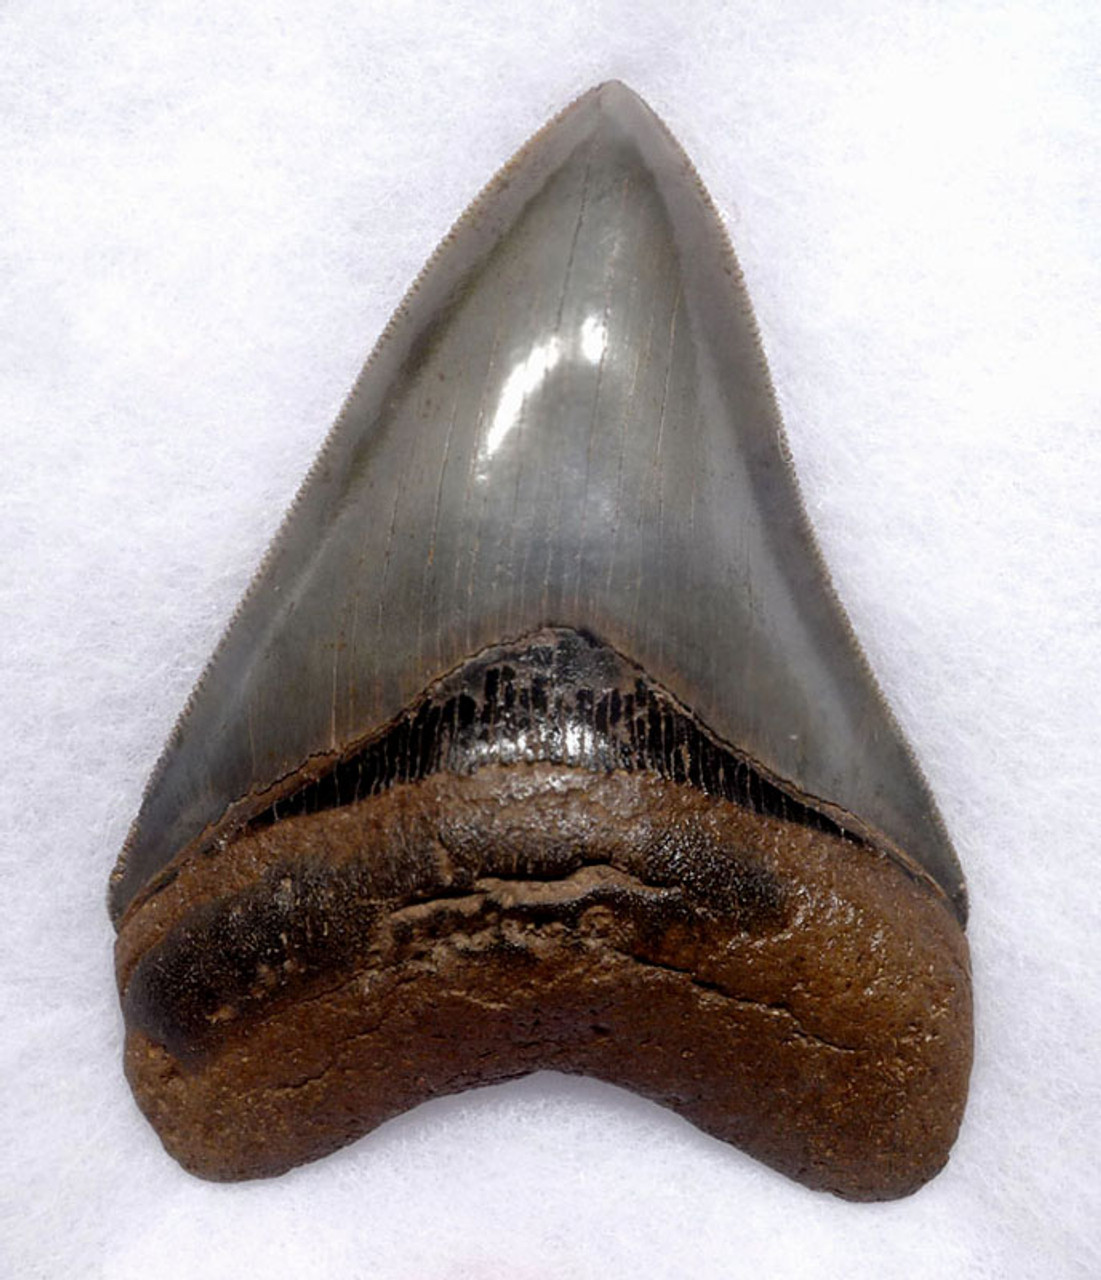 SH6-387 - COLLECTOR GRADE 4.25 INCH MEGALODON SHARK TOOTH WITH CHATOYANT SILVER ENAMEL